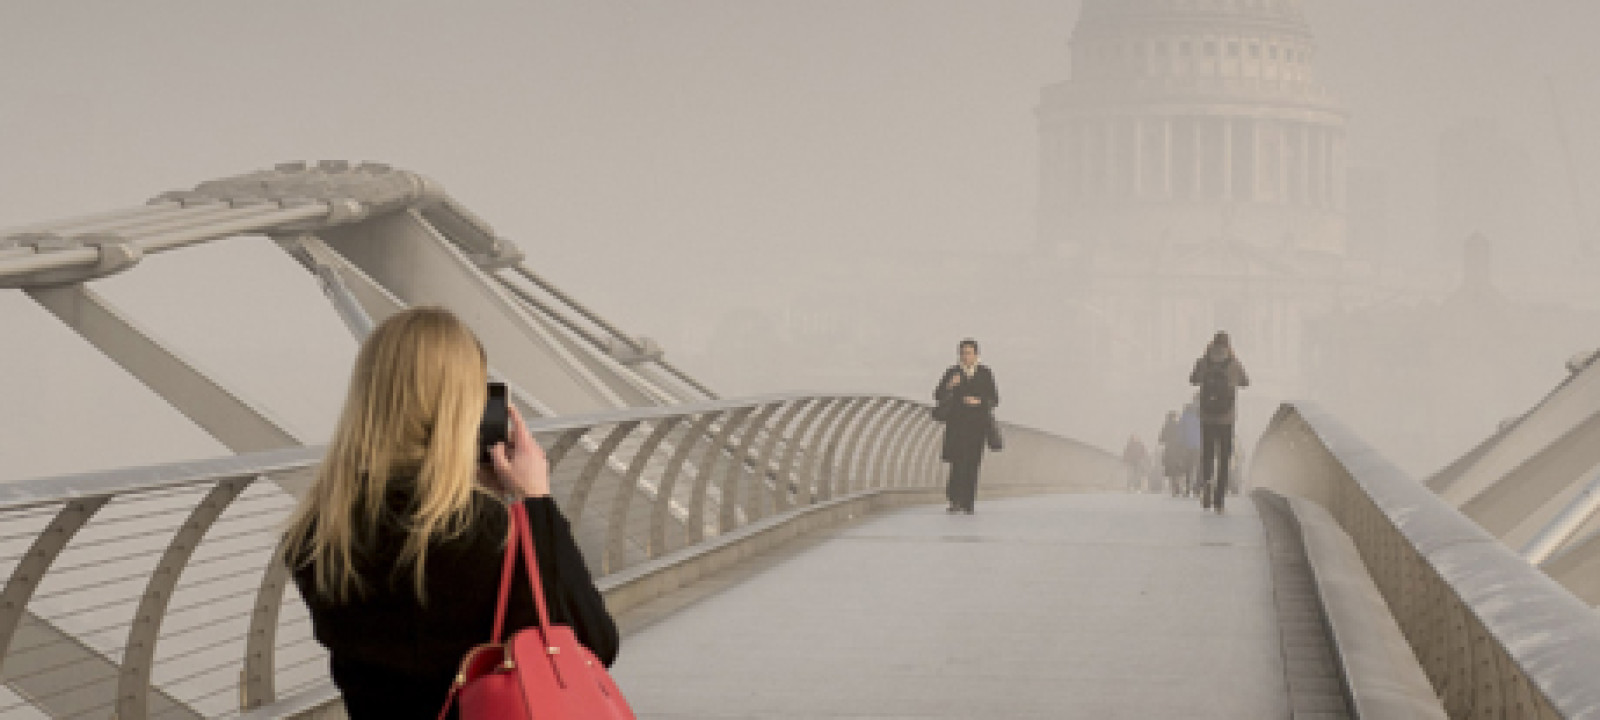 Fog in London, Britain – 13 Mar 2014